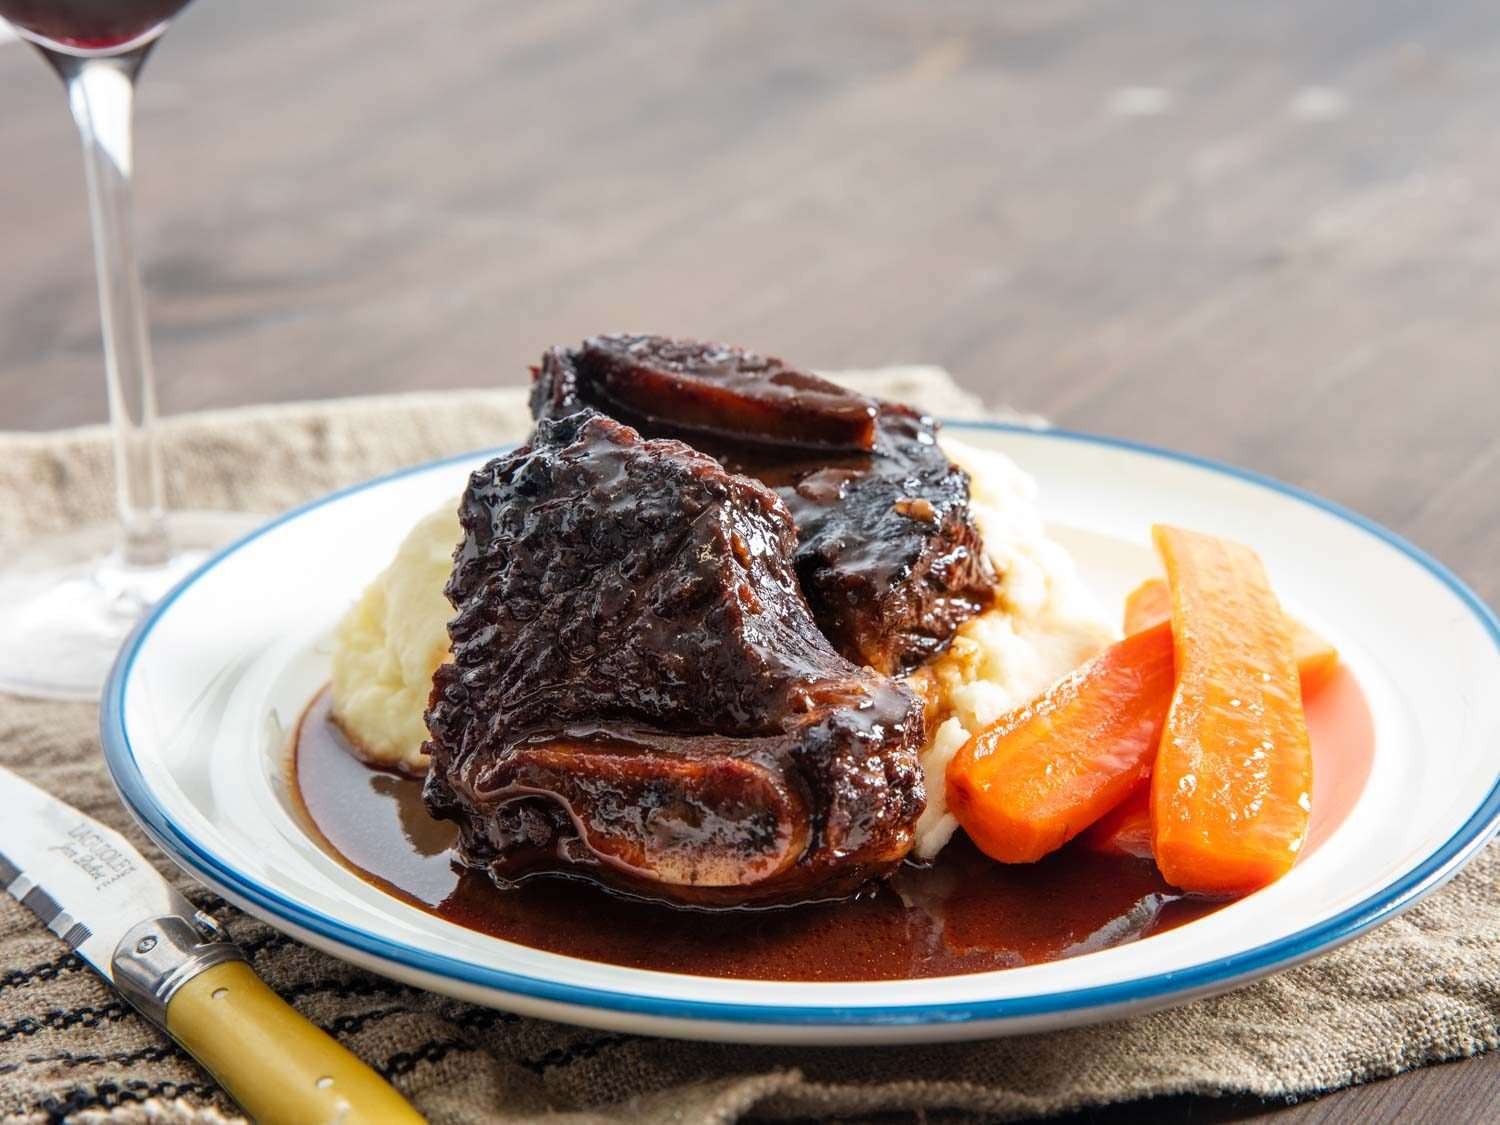 Red-wine braised beef short ribs on a plate with the rich, reduced sauce and sides of mashed potatoes and carrots